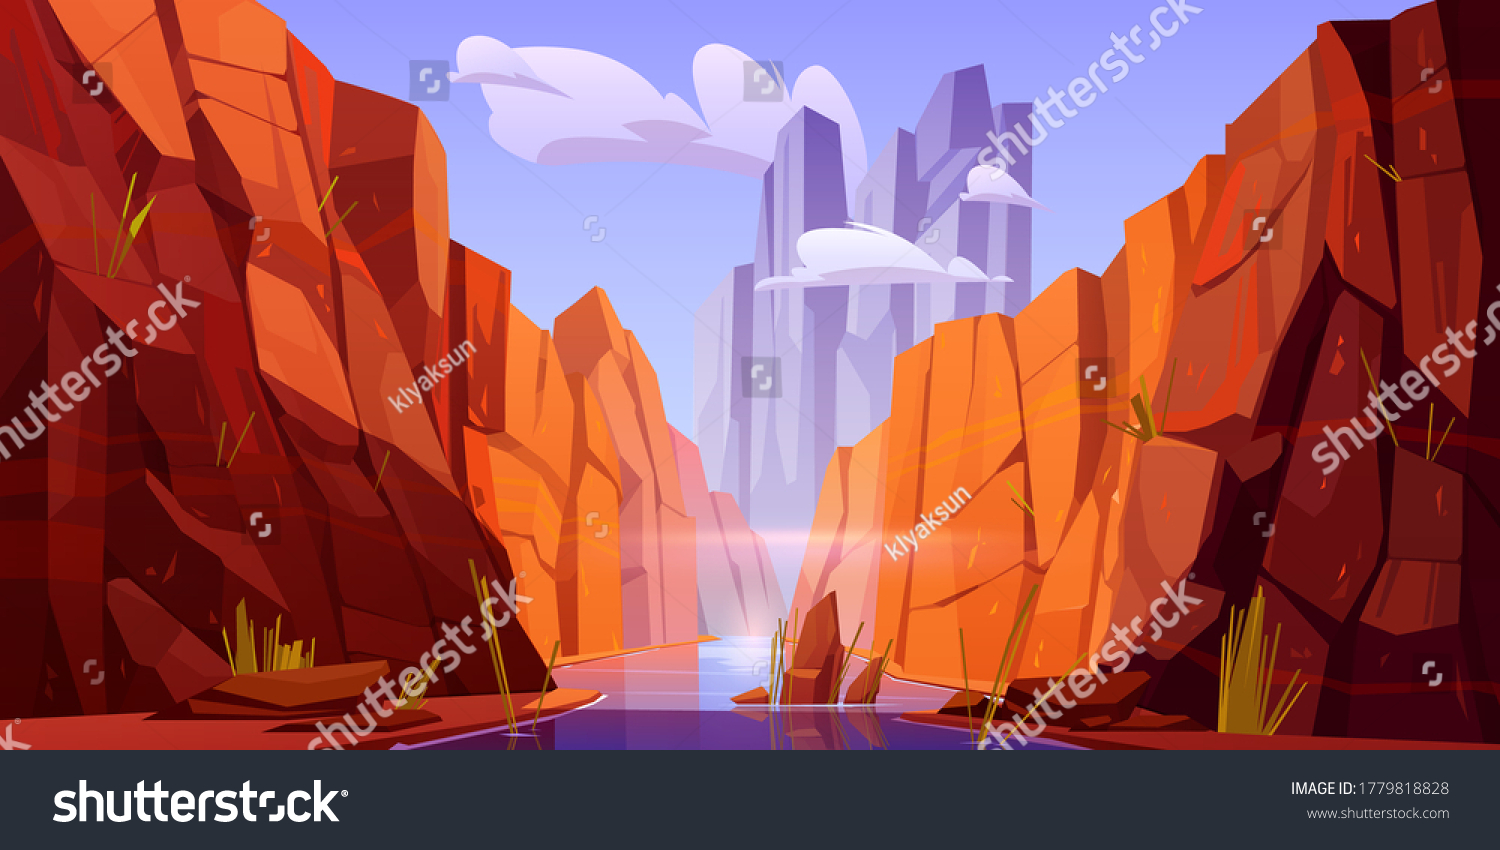 Grand Canyon with river on bottom, national park of Arizona state on Colorado stream. Red sandstone mountains, horizon with sand rocks and sky, nature landscape background, Cartoon vector illustration